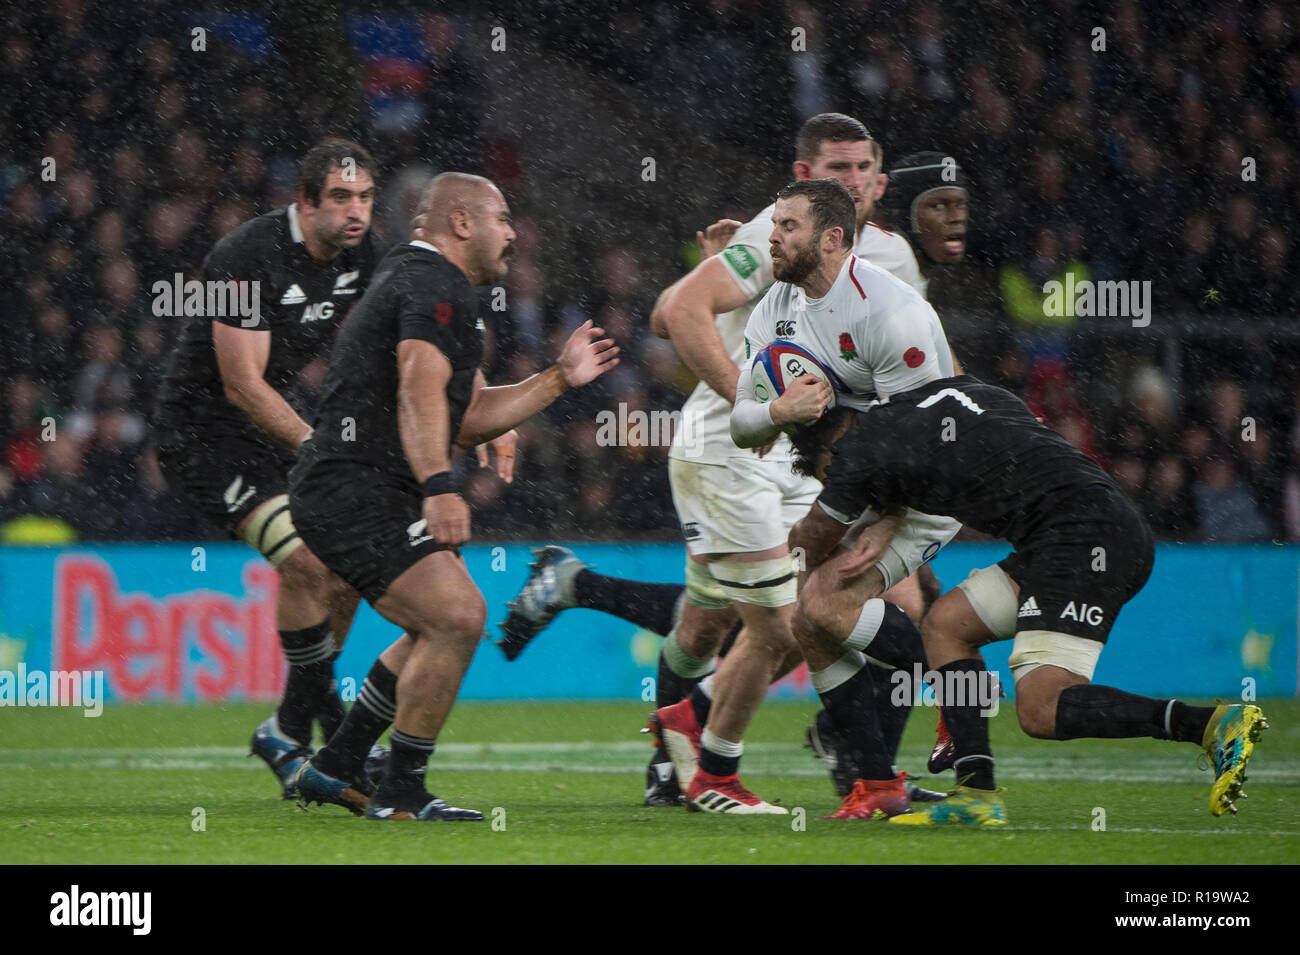 Twickenham, United Kingdom, Saturday, 10th  November 2018, RFU, Rugby, Stadium, England, Quilter, Autumn International, England vs New Zealand Elliot DALY tackled by Ardie SAVEA,  © Peter Spurrier - Stock Image